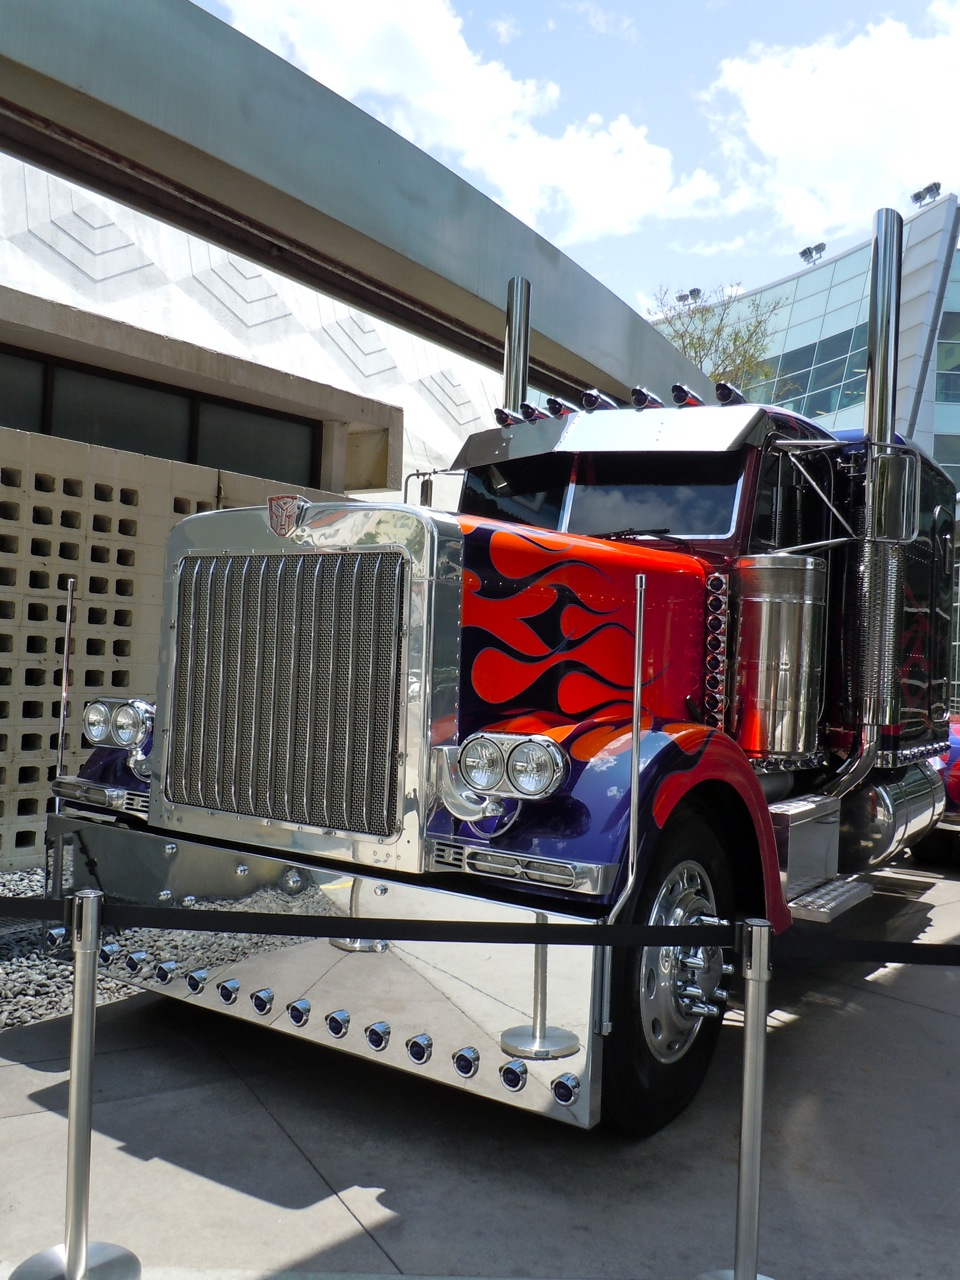 Pics For > Optimus Prime Truck Transformers 3